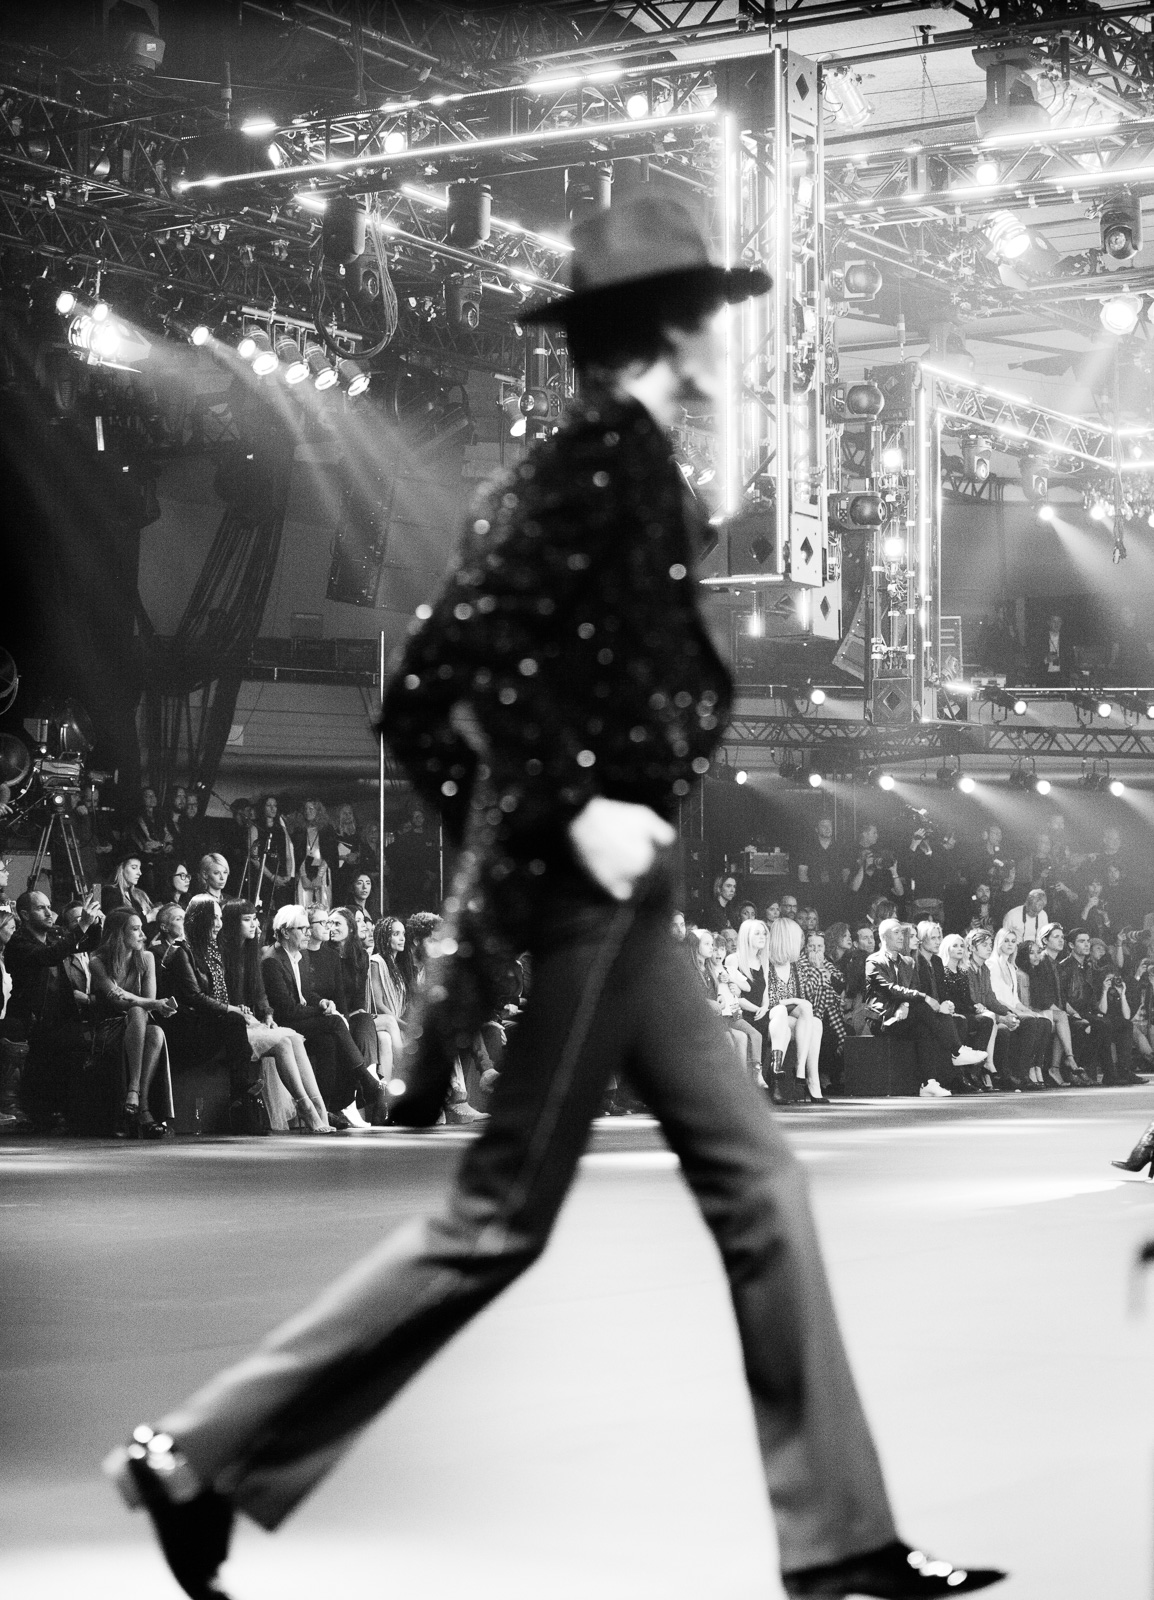 Saint Laurent FW16 (Hedi Slimane) at the Palladium on February 10, 2016 in Los Angeles, California.